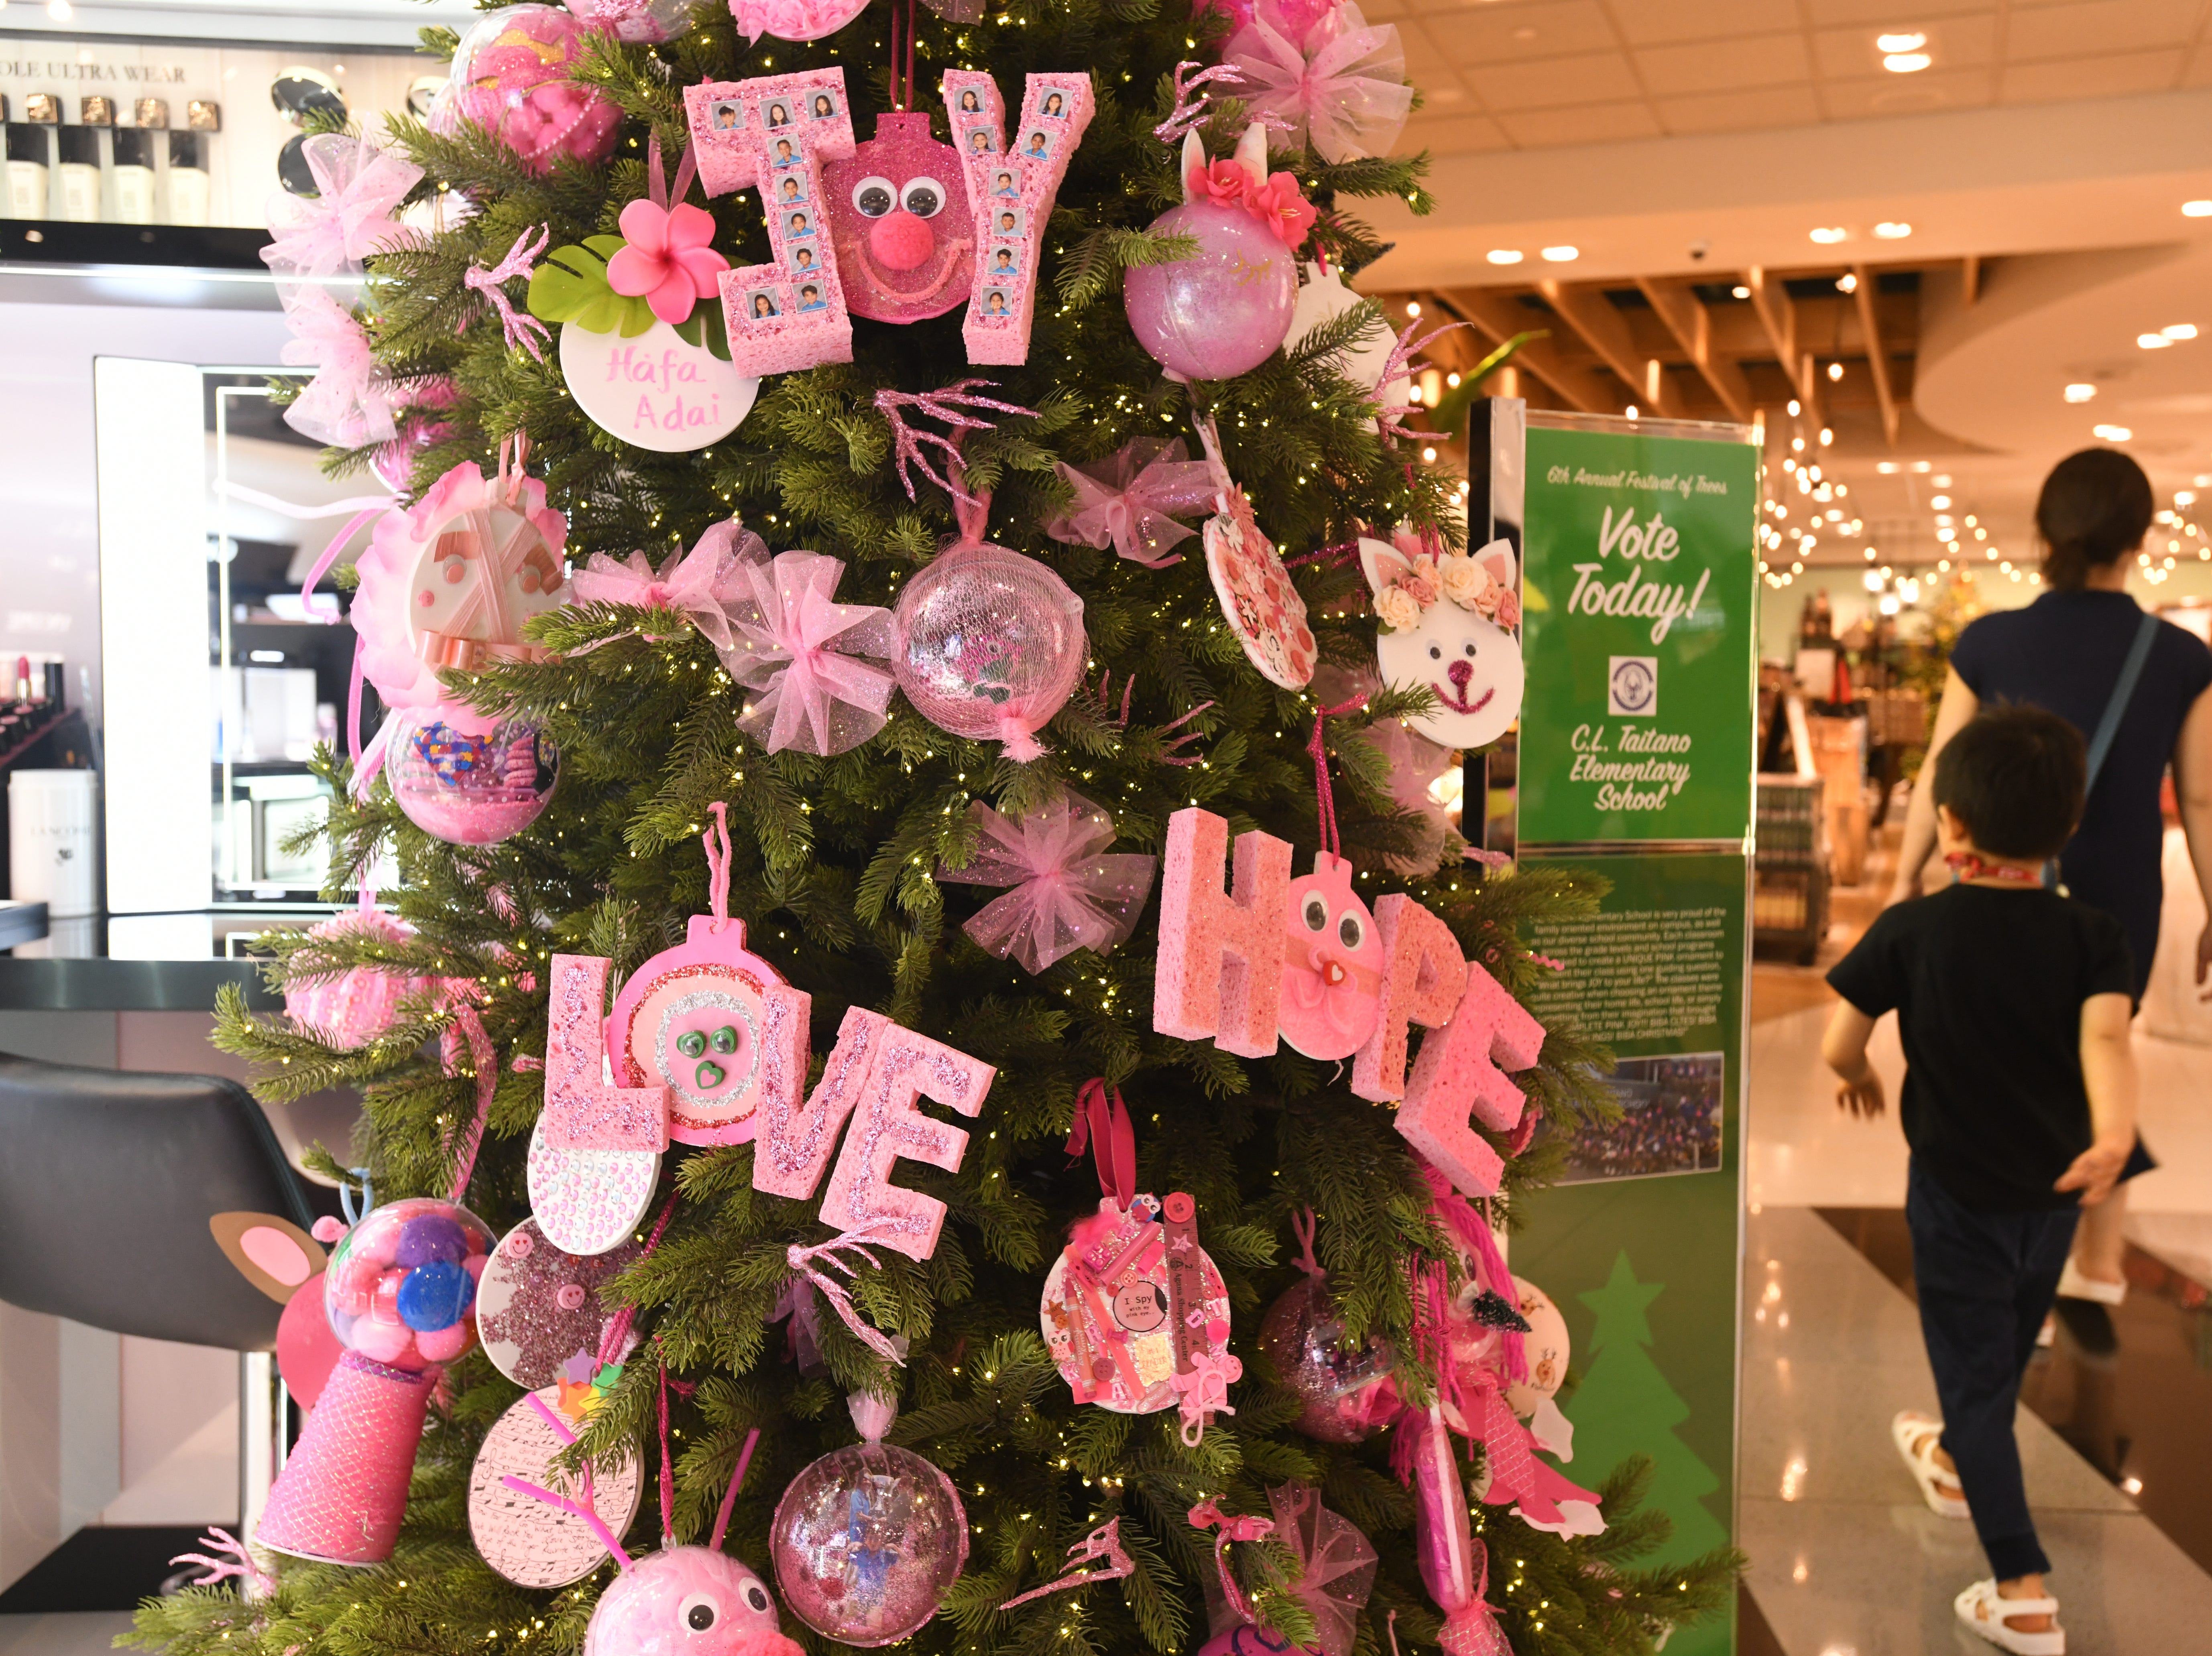 Pink was the color scheme assigned to C.L. Taitano Elementary School for their Christmas decorated tree entered in the 6th annual Festival of Trees competition at the T Galleria by DFS in Tumon on Saturday, Jan. 5, 2019. The school placed third in the competition and was awarded $500 for their creativity in dressing up the tree.